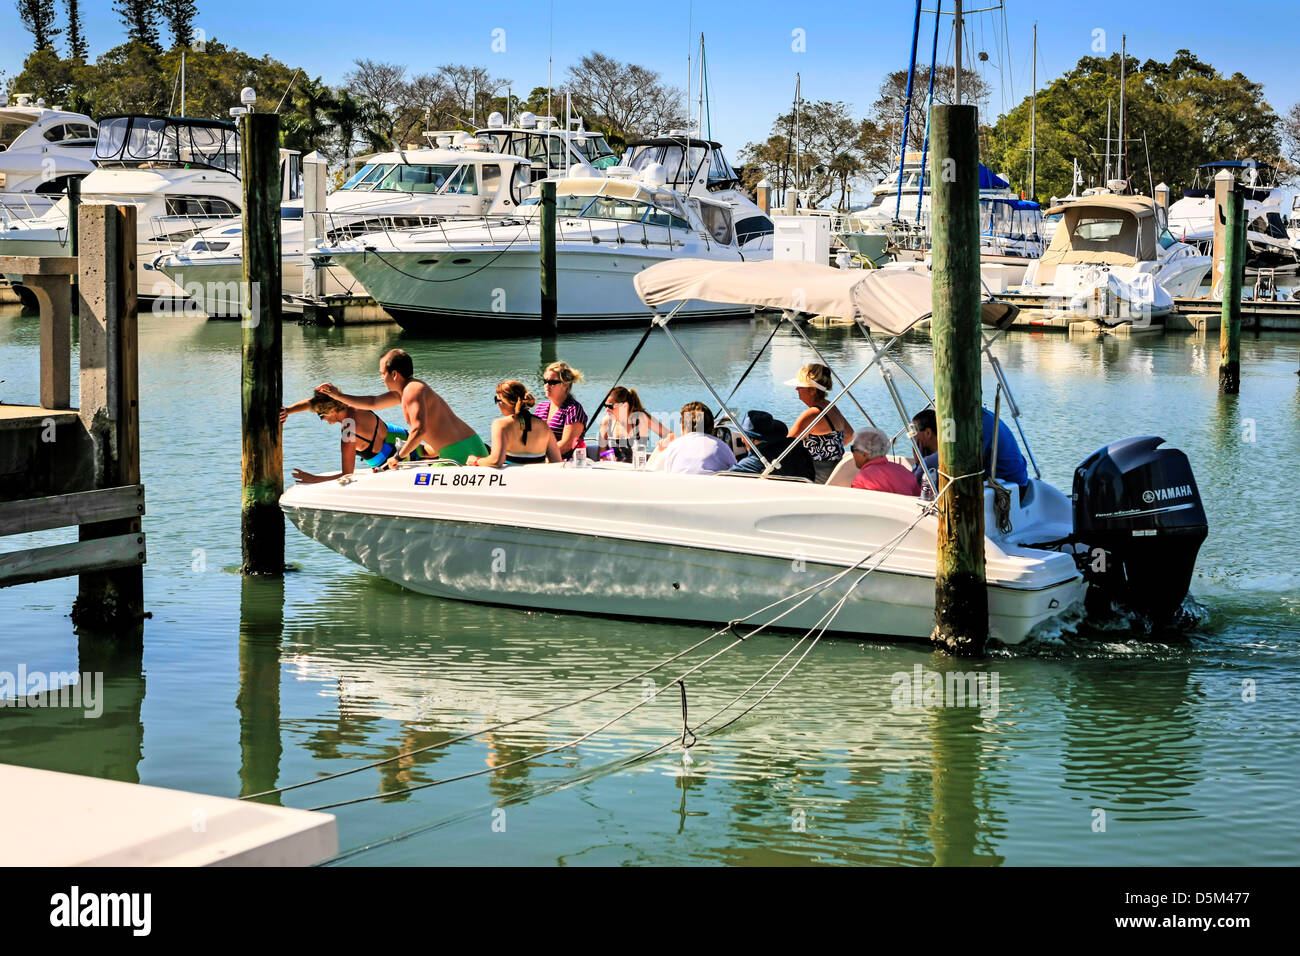 People having rented a boat collide with a mooring pole in Sarasota marina FL - Stock Image